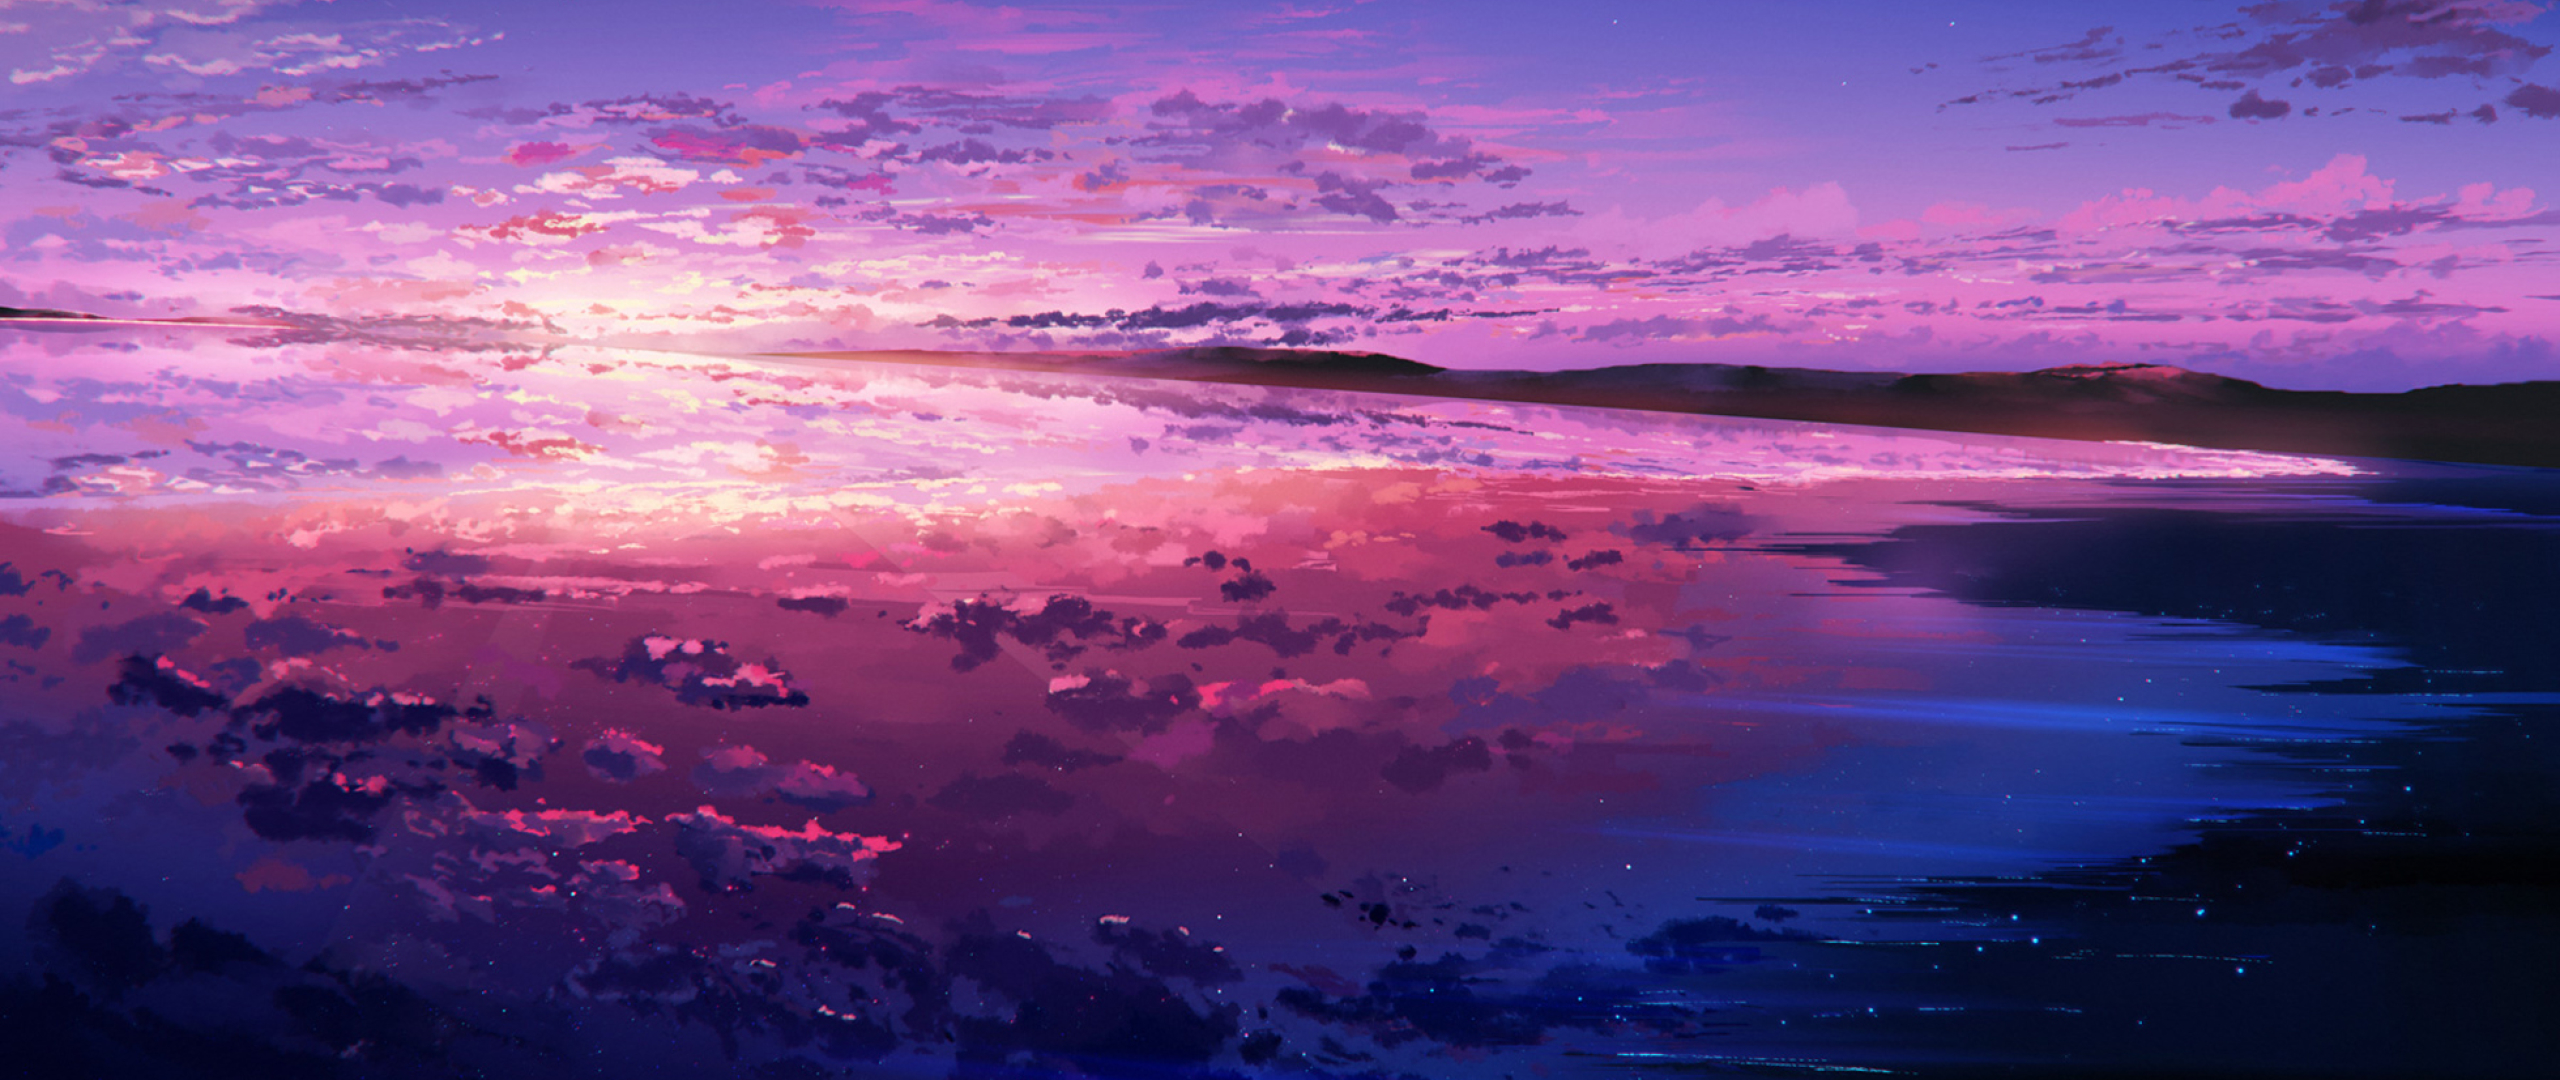 2560x1080 Purple Sunset Reflected In The Ocean 2560x1080 Resolution Wallpaper Hd Artist 4k Wallpapers Images Photos And Background